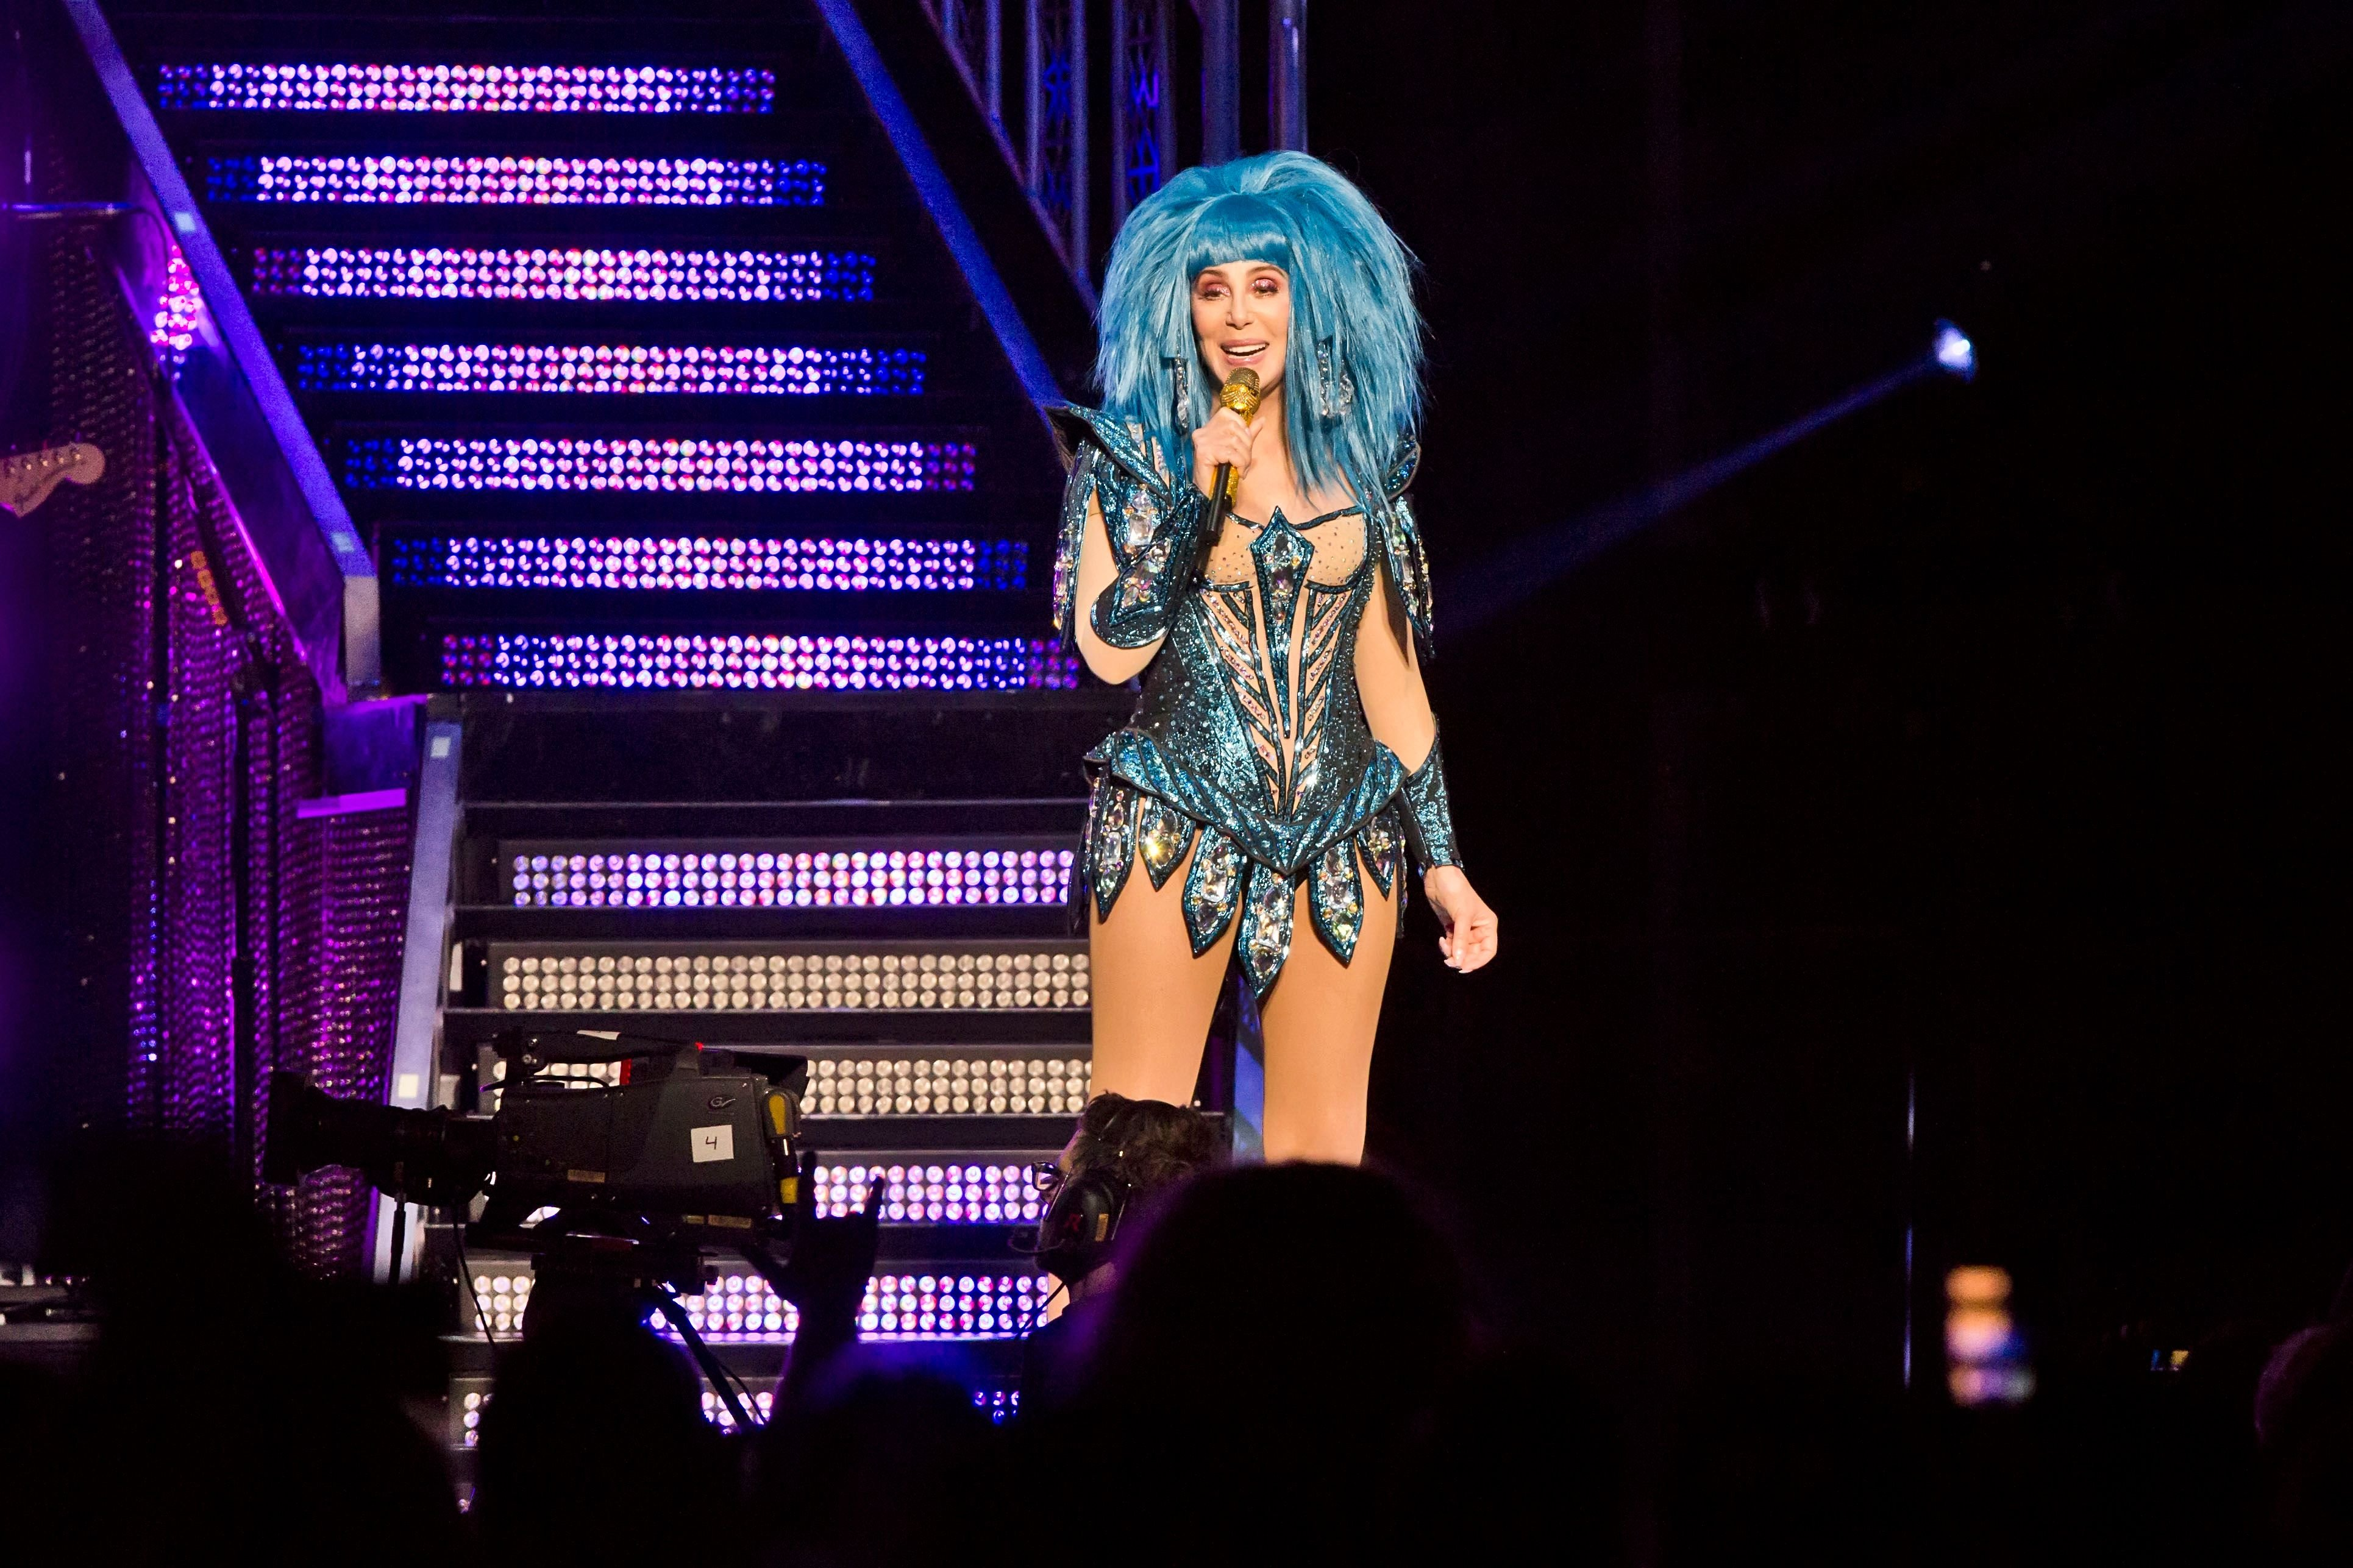 Cher on stage during a concert in 2019 in Berlin, Germany   Source: Getty Images